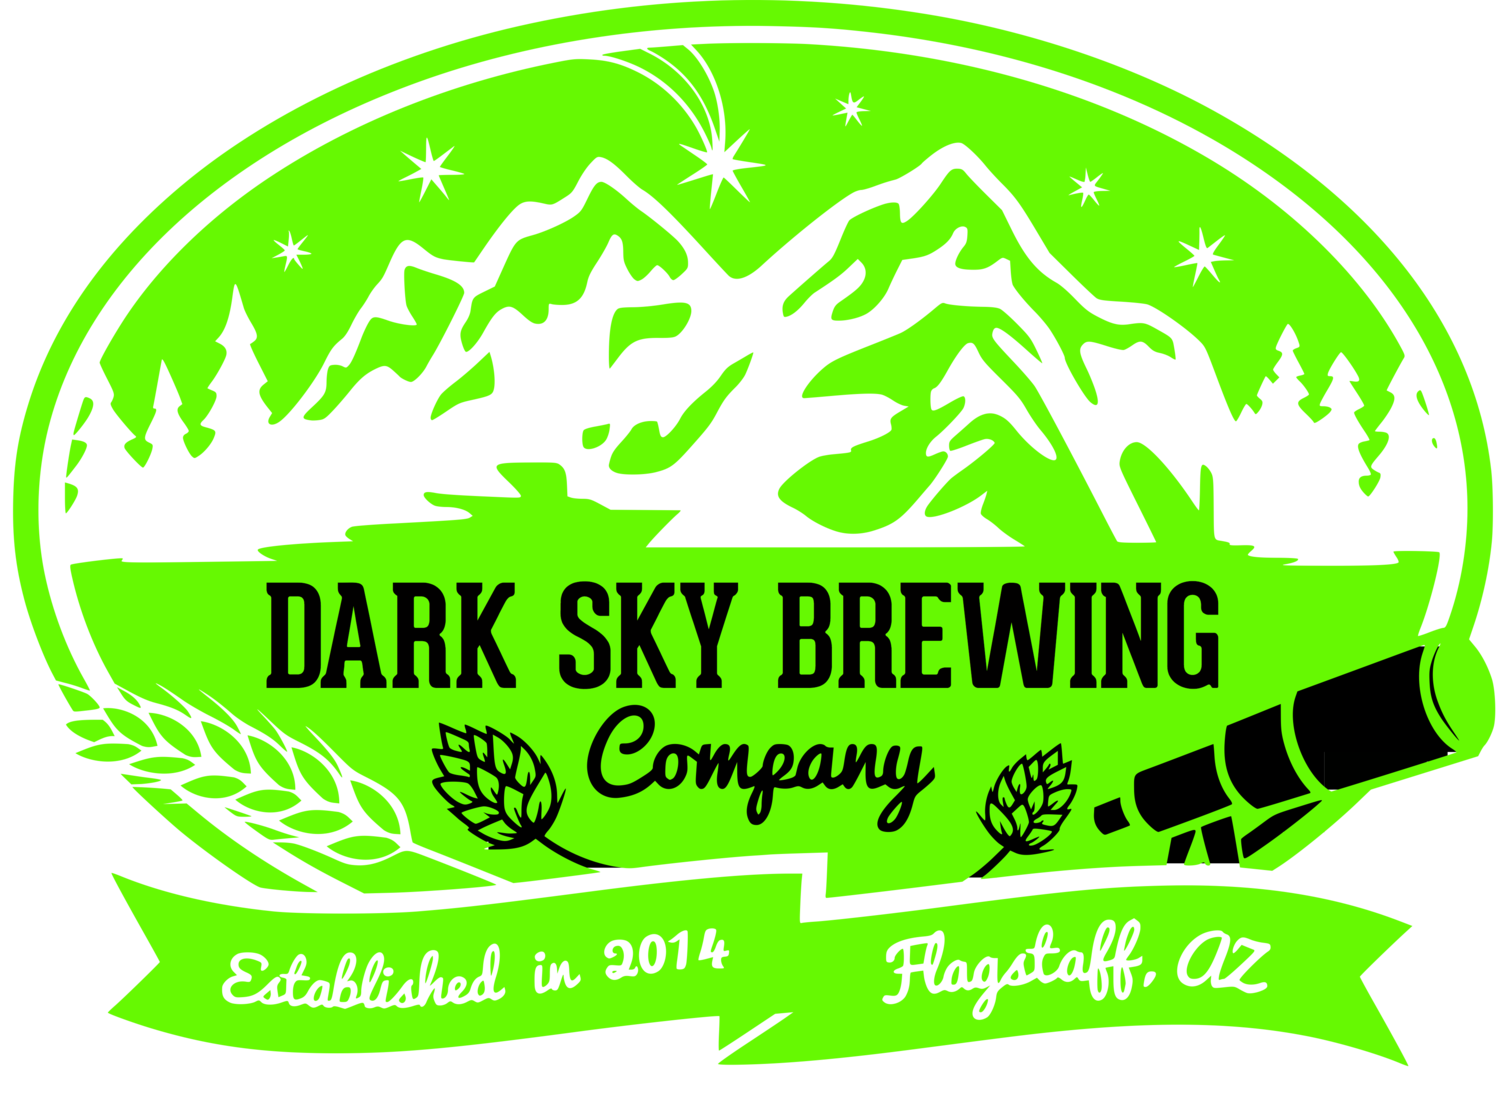 Dark Sky Brewing